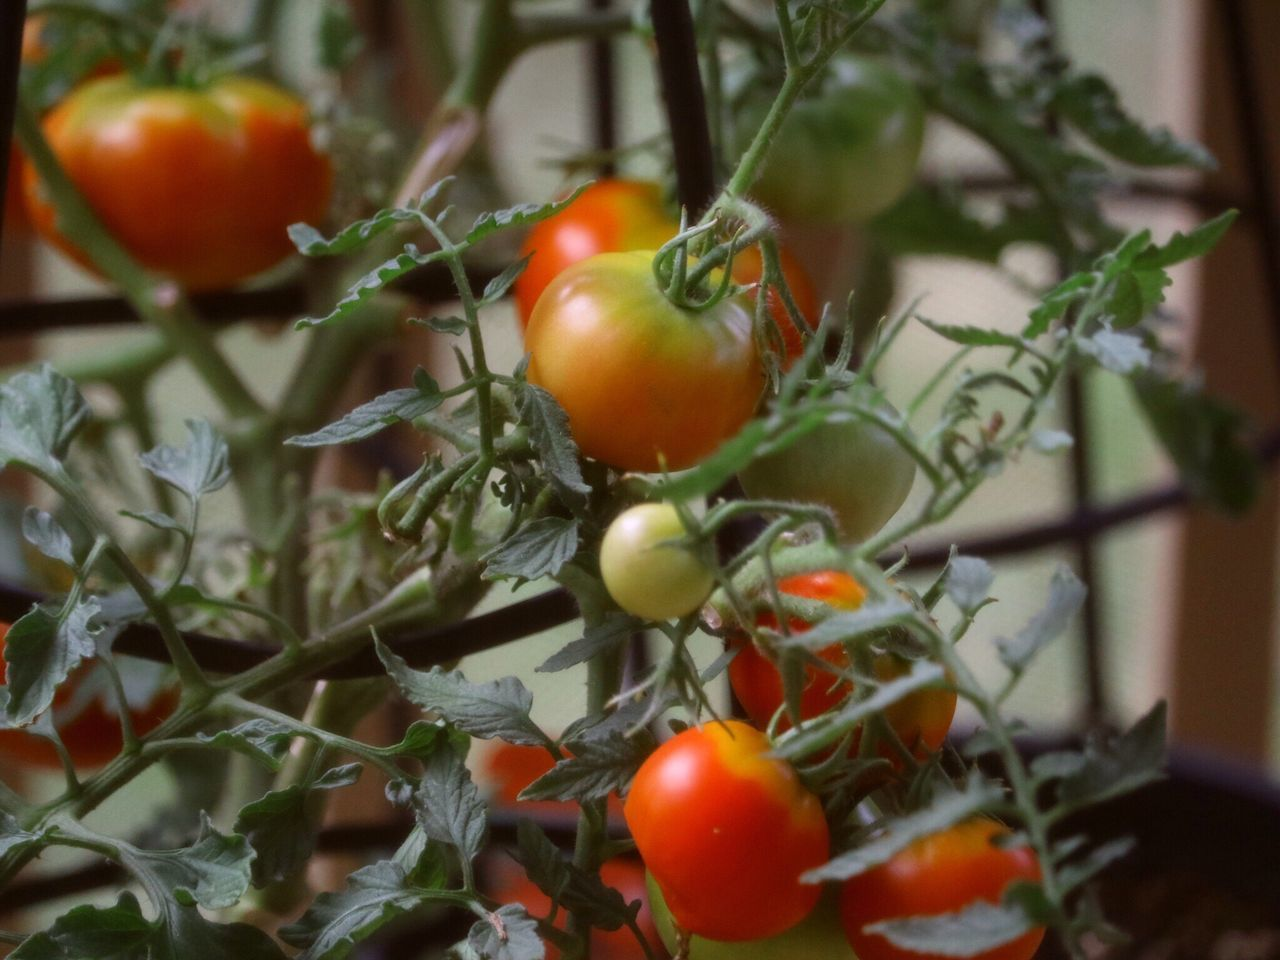 Colour Of Life Fruit Summertime Blossoming  Crop  Red Green Leaves. Delicious In The Garden Ready-to-eat Ready To Pick Ripe Fresh Tomatoes